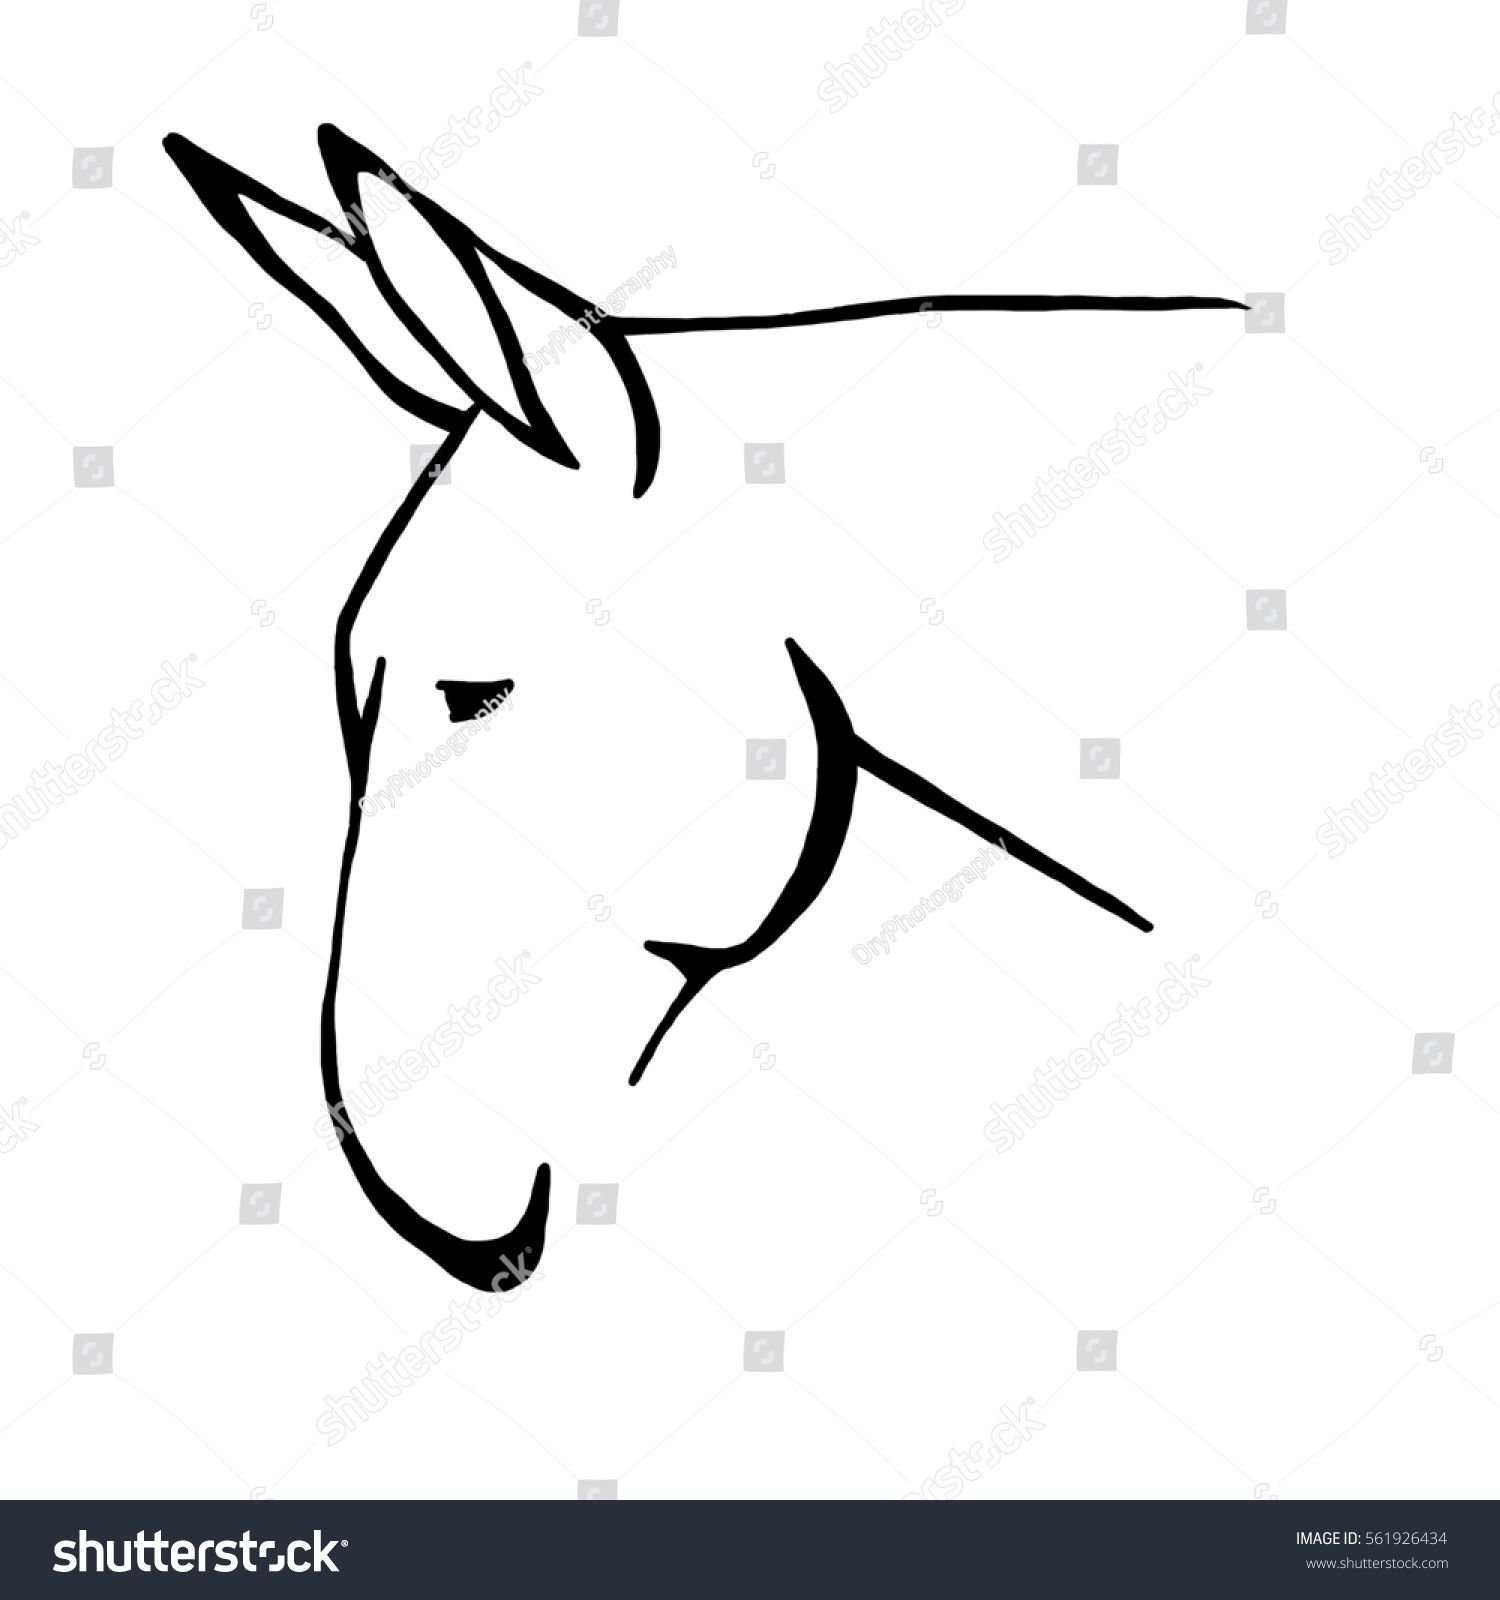 Mule clipart head. Image result for crafts